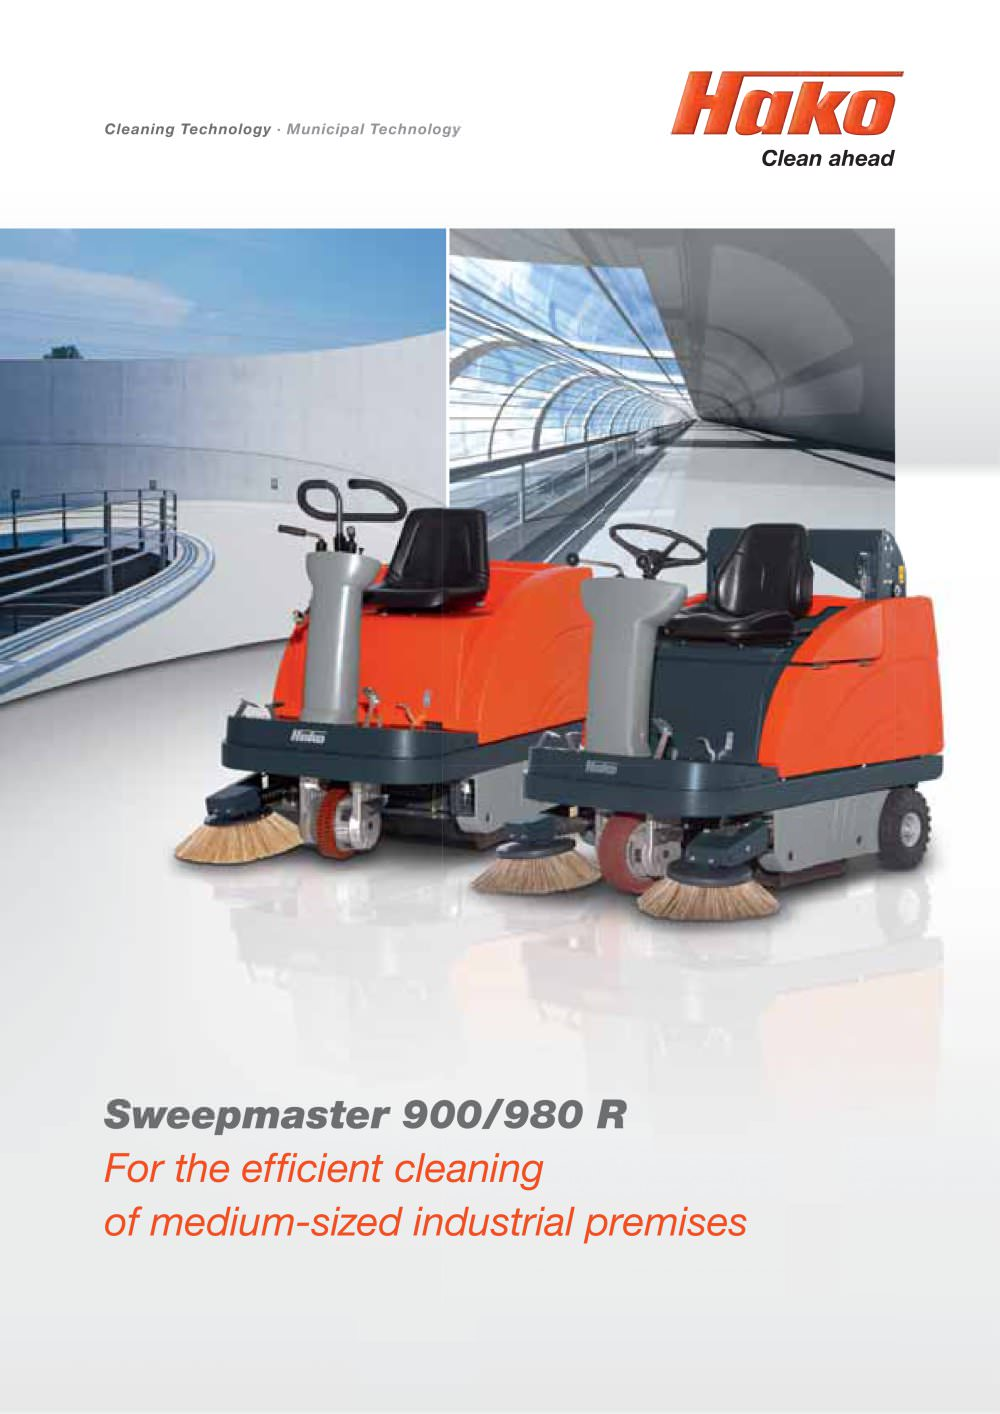 Sweepmaster 900/980 R - 1 / 8 Pages